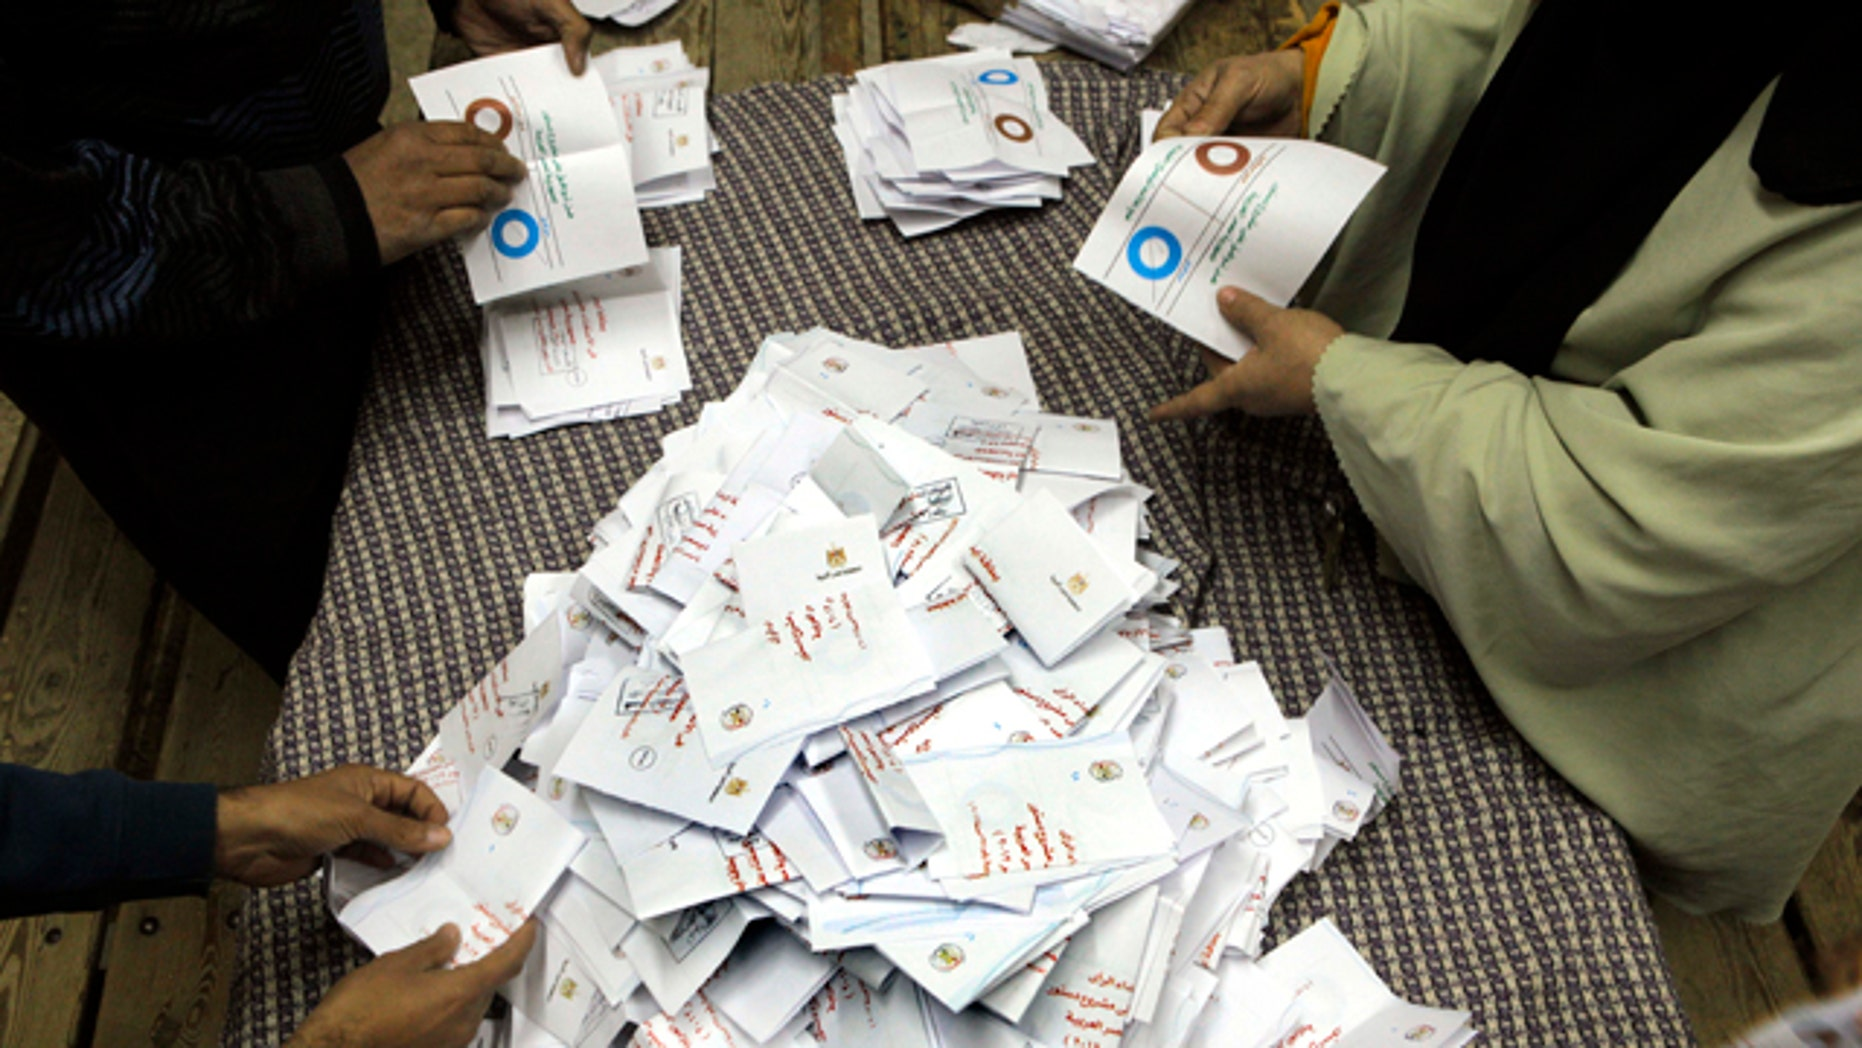 Dec. 15, 2012: Egyptian referendum officials count votes at a polling station in Cairo, Egypt.